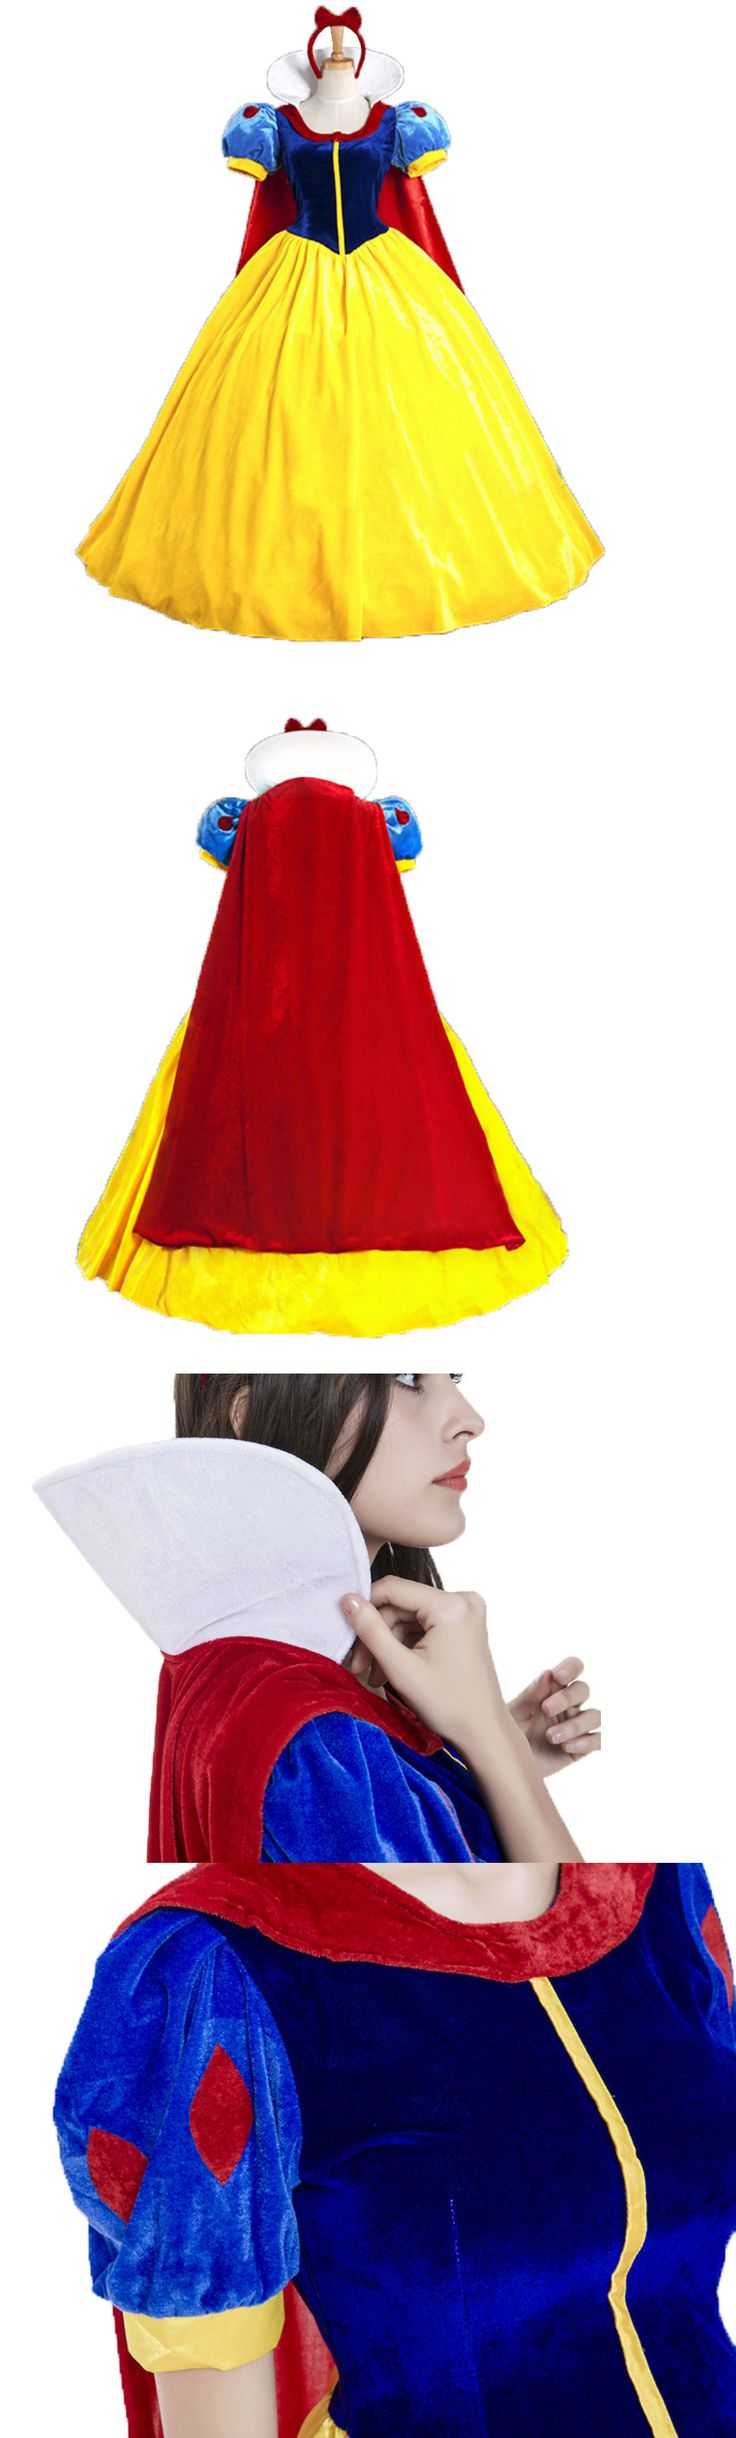 Women 53369: Halloween Cosplay Fancy Dress Princess Snow White Costume For Adult W Petticoat -> BUY IT NOW ONLY: $39 on eBay!